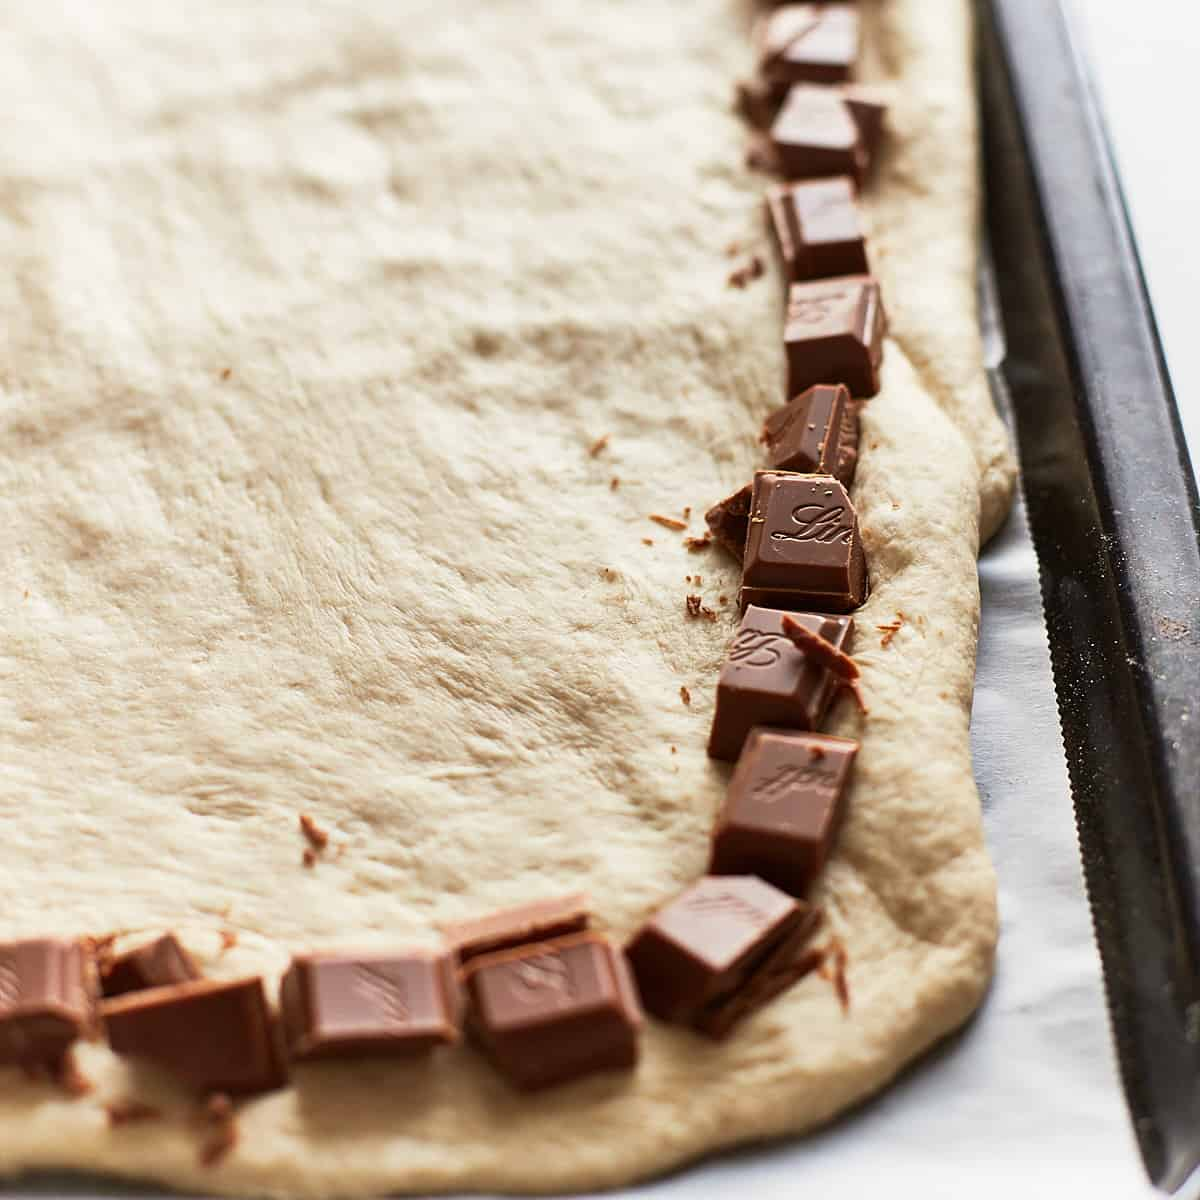 Chocolate pieces placed along the edge of a raw pizza dough